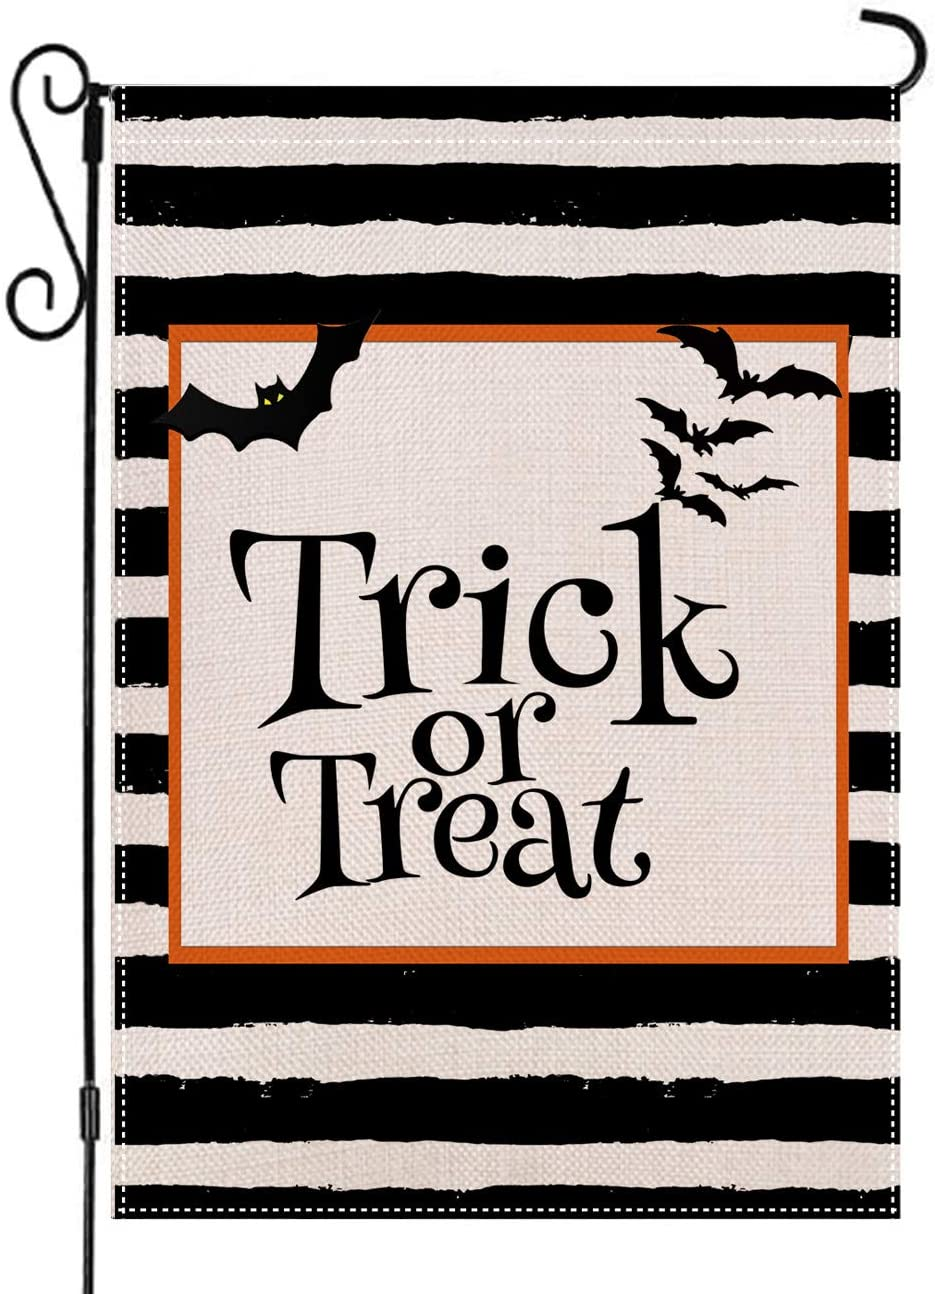 AUOIKK Trick or Treat Garden Flag Vertical Double Sized, Halloween Farmhouse Flag Burlap Vintage Watercolor Yard Outdoor Garden Decoration 12.5 x 18 Inch